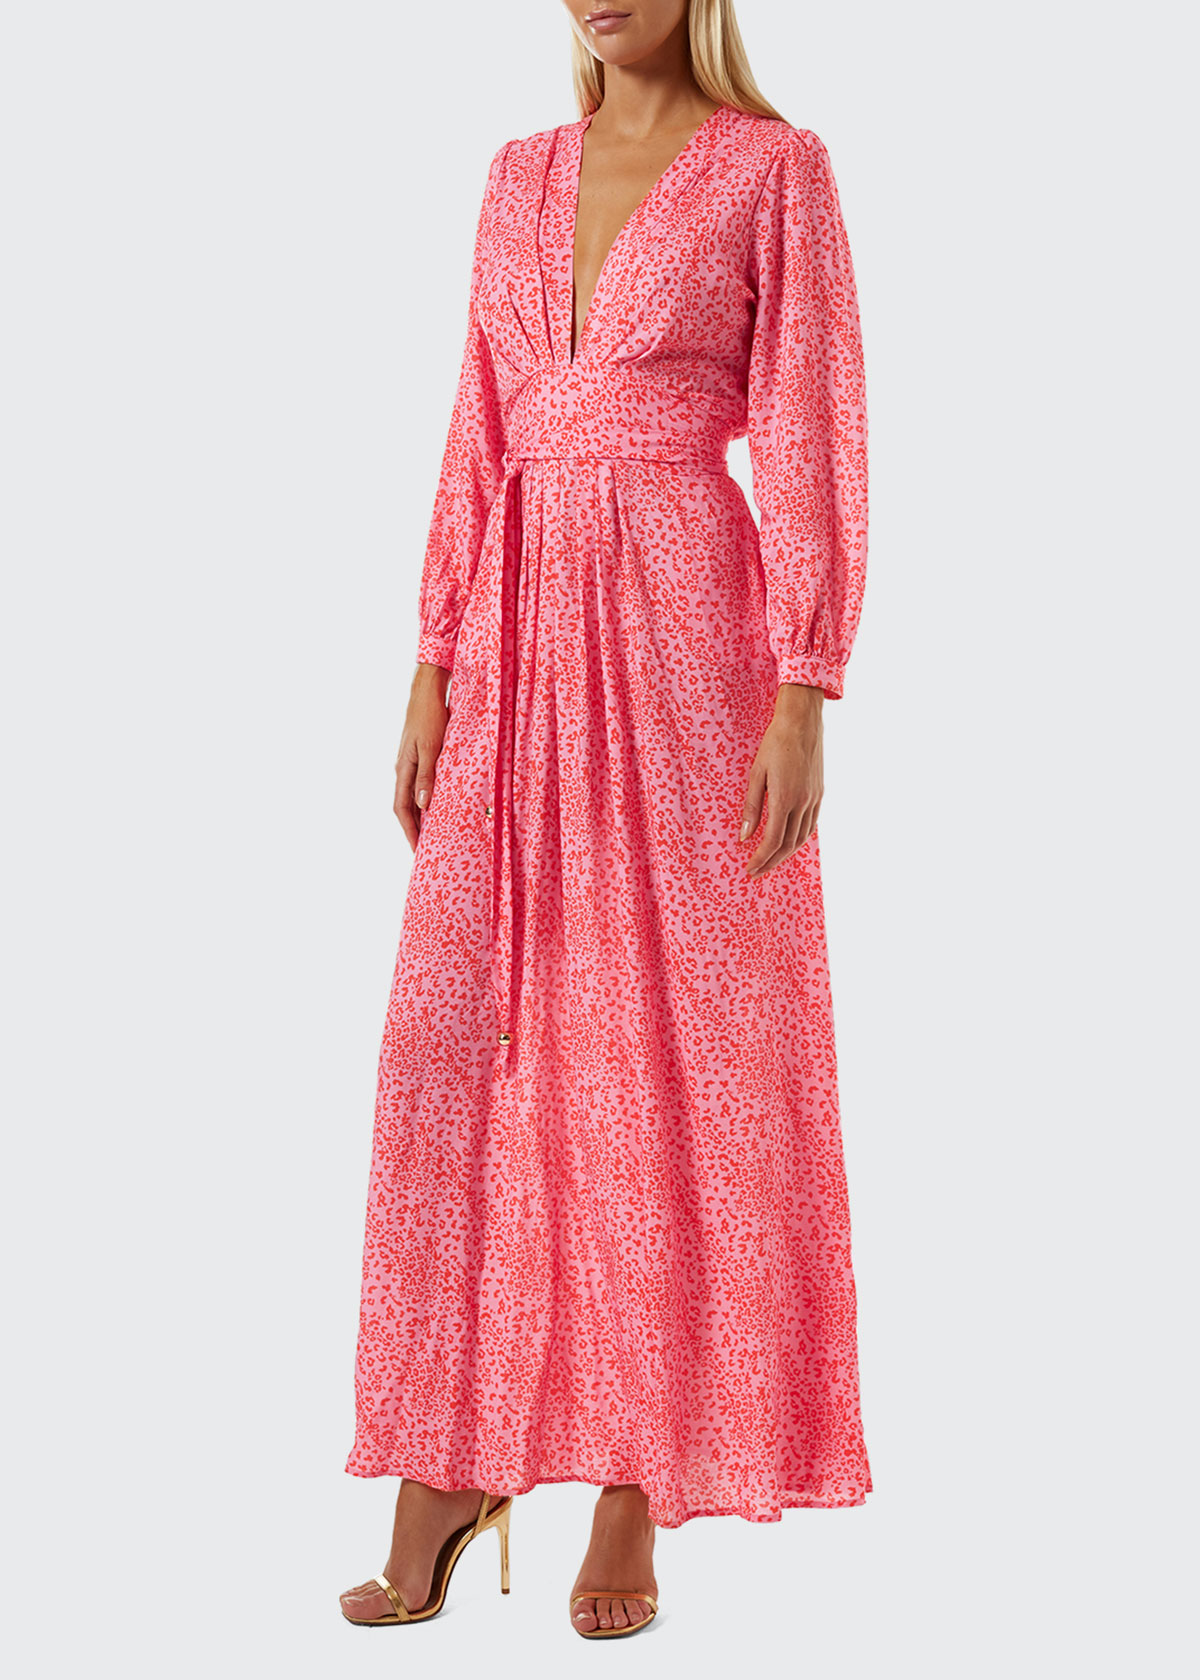 Melissa Odabash CARDINAL ANIMAL-PRINT MAXI DRESS